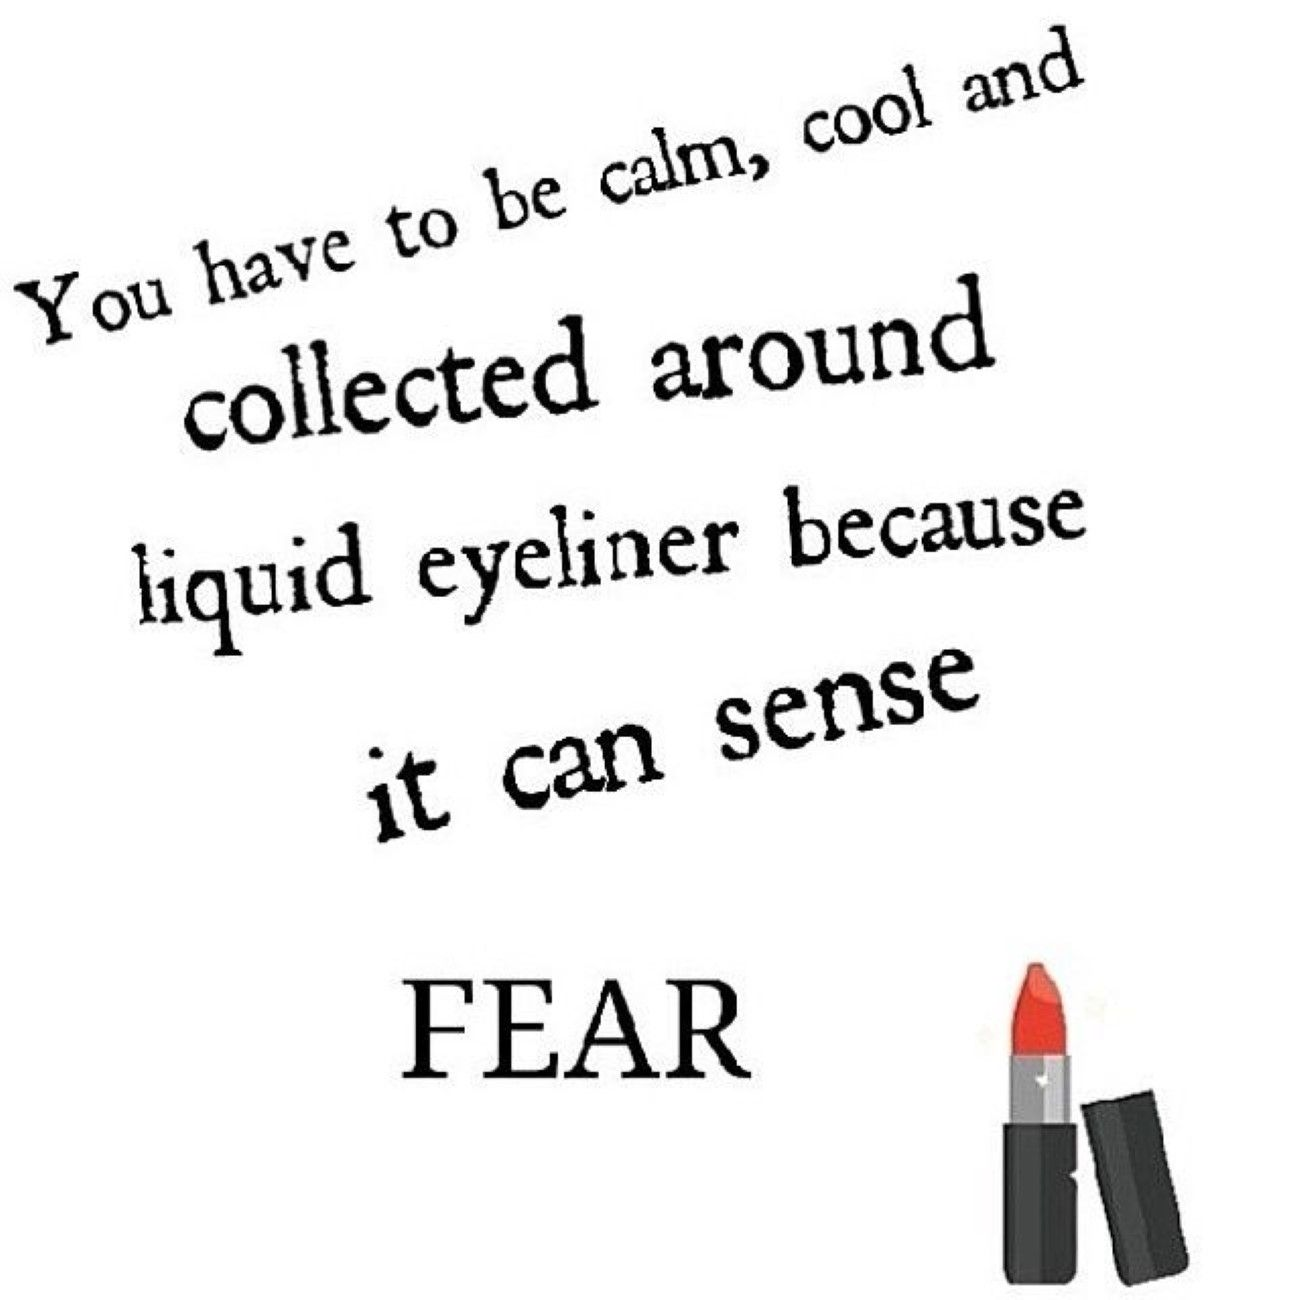 Stay calm, cool, and collected around liquid eyeliner.